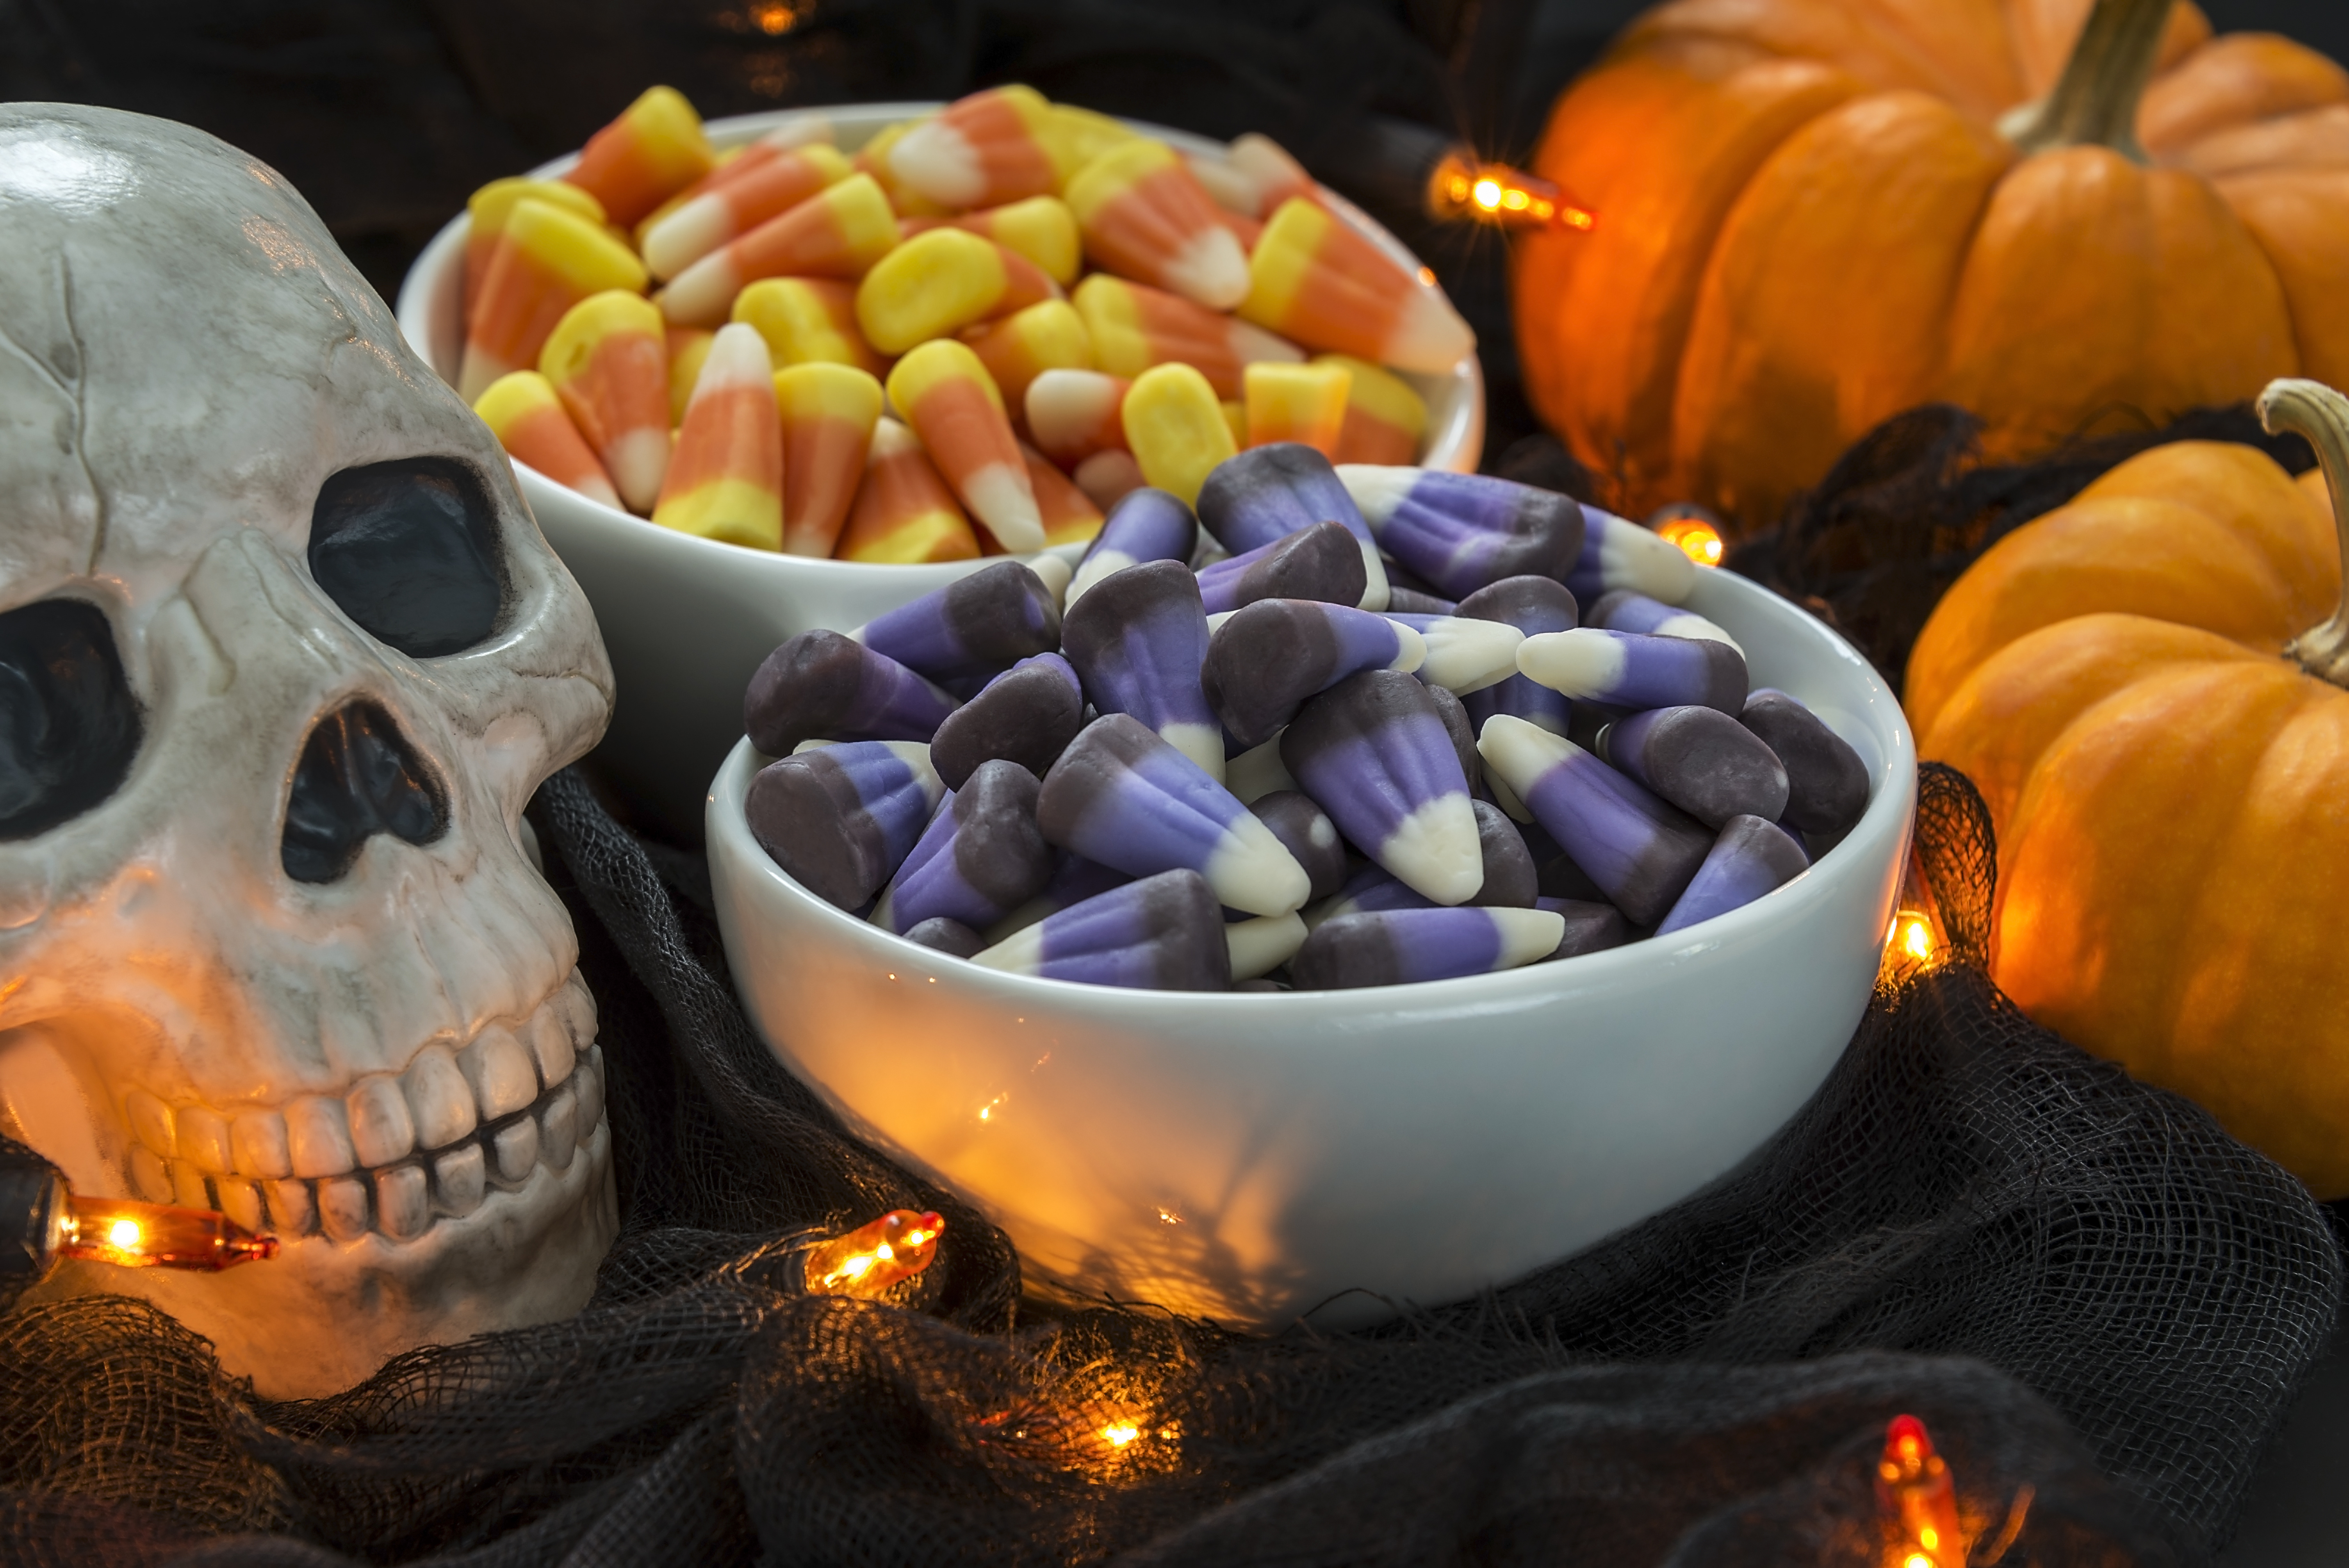 HOW MUCH SUGAR IS IN HALLOWEEN CANDY